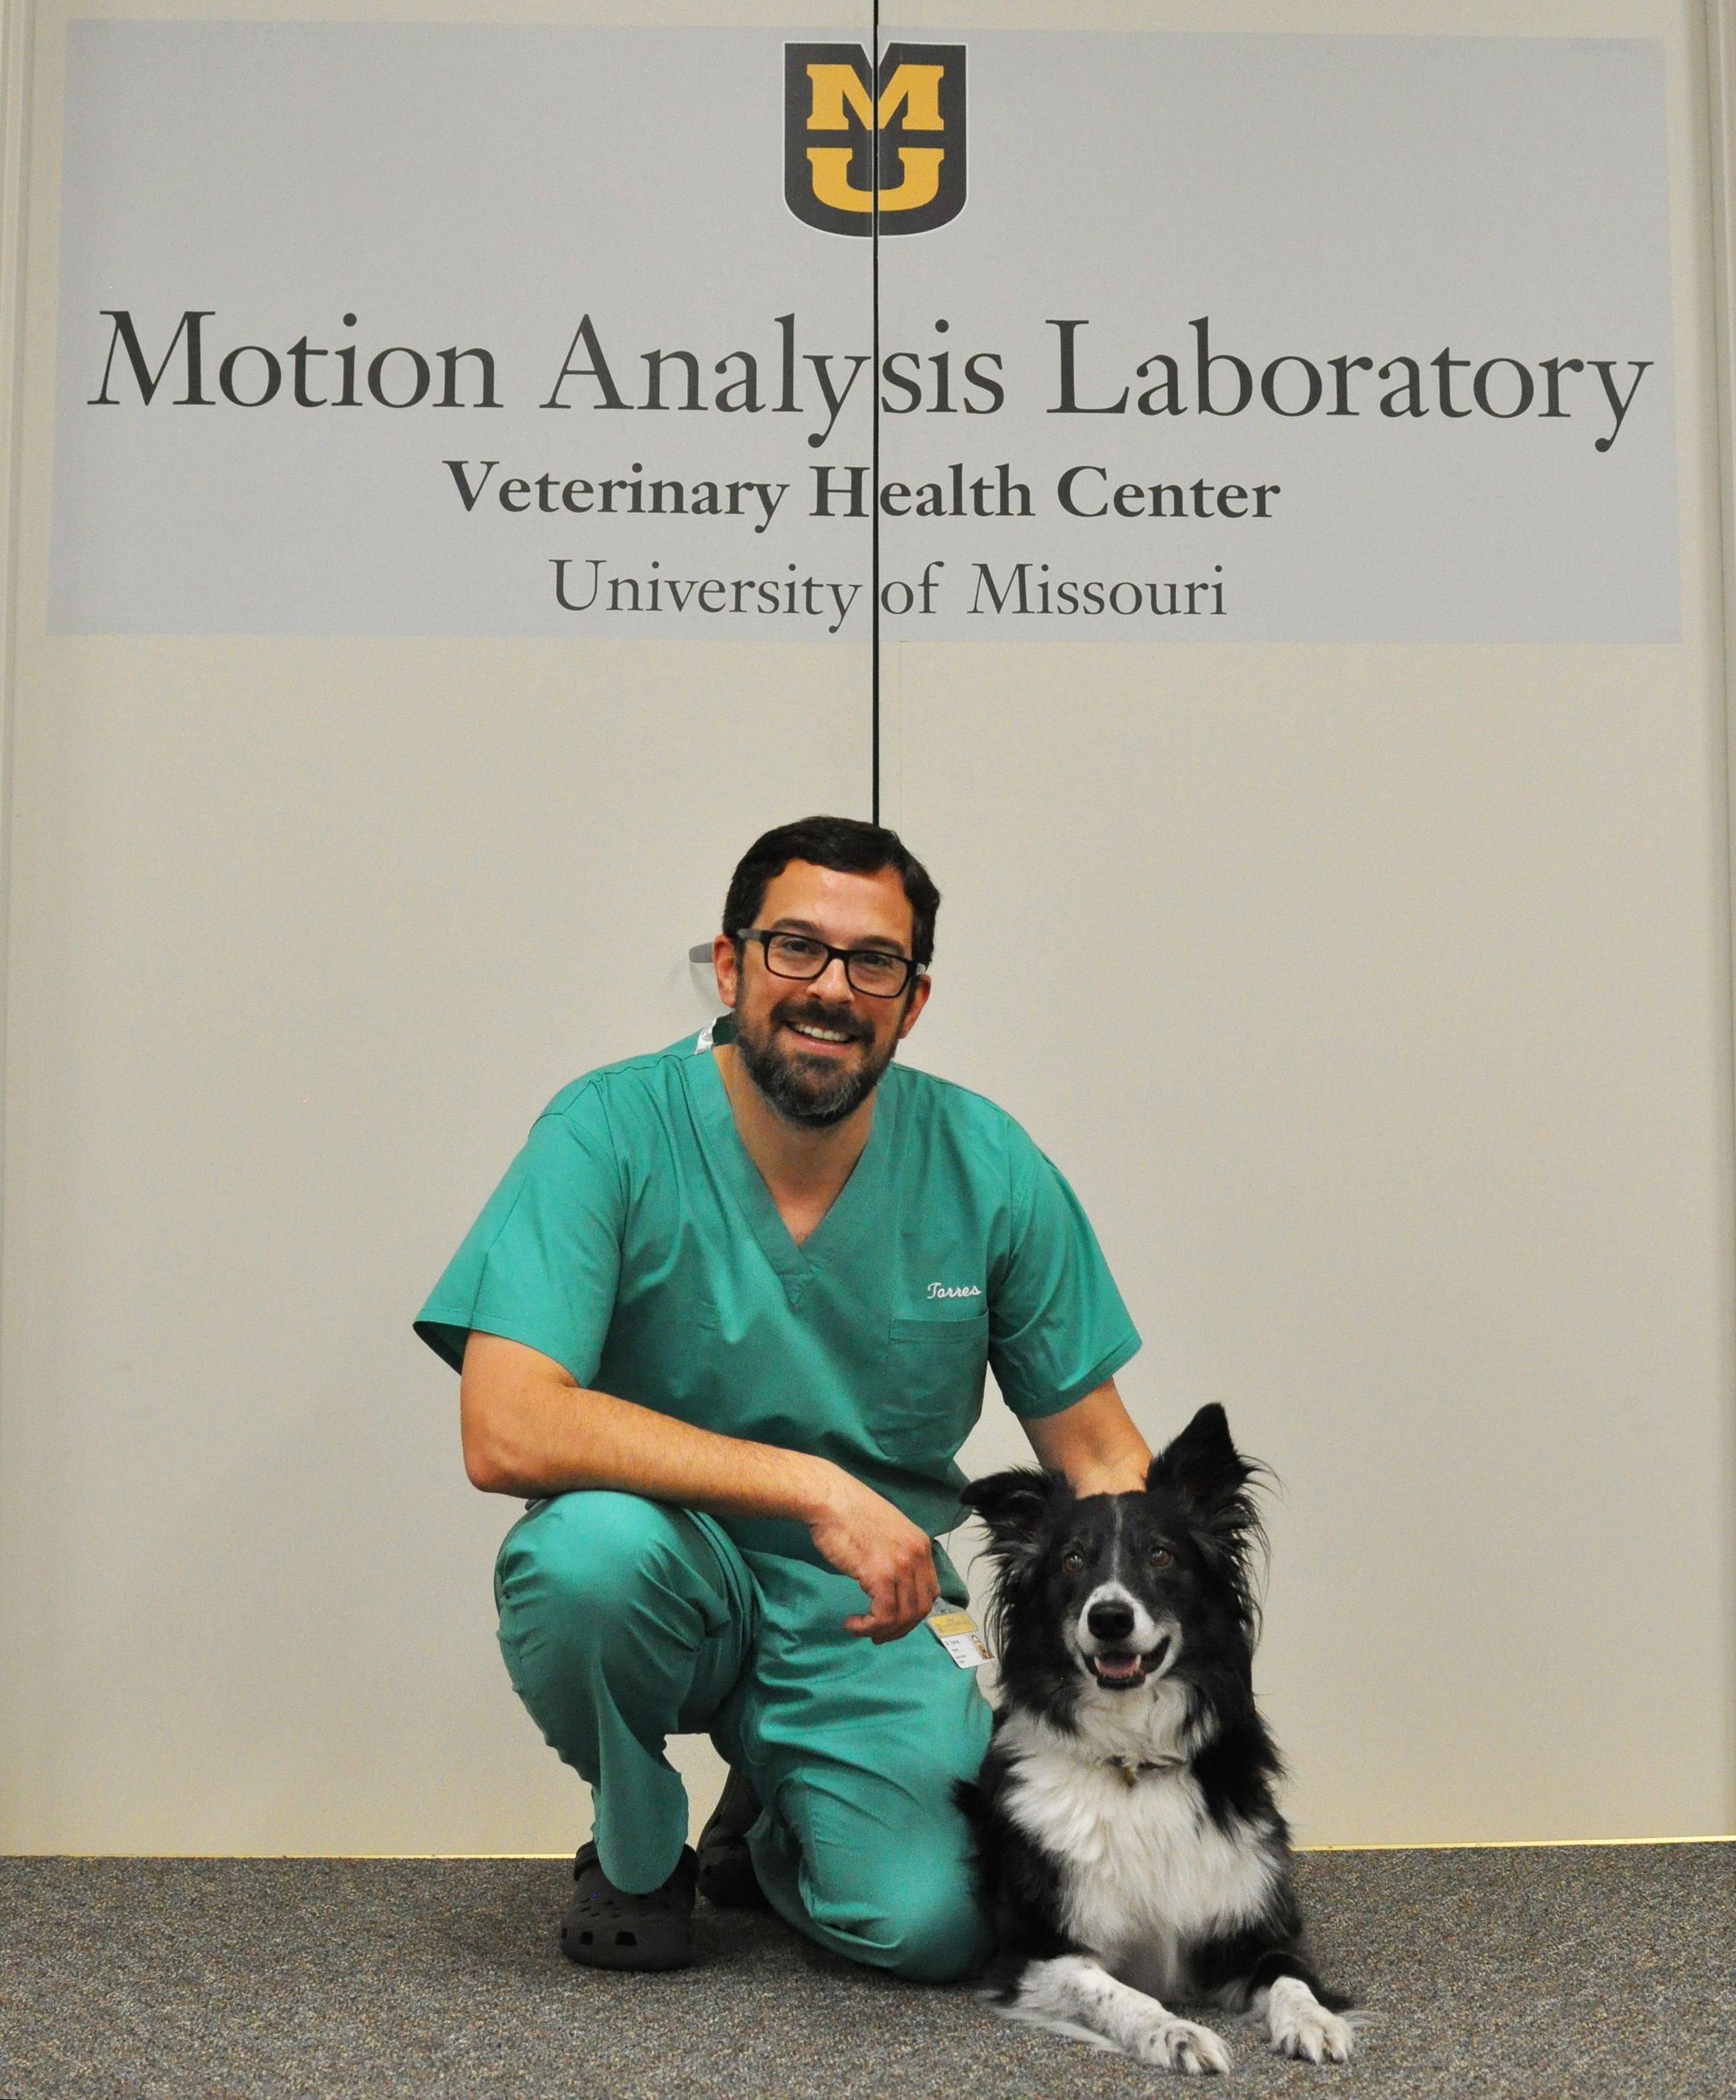 """Bryan Torres, an assistant professor of small animal orthopedic surgery, is the director of the Motion Analysis Laboratory at the MU College of Veterinary Medicine. Using pressure-sensitive plates and specialized cameras that photograph """"markers"""" placed in strategic areas on the patient, he is able to analyze how dogs move in real time."""